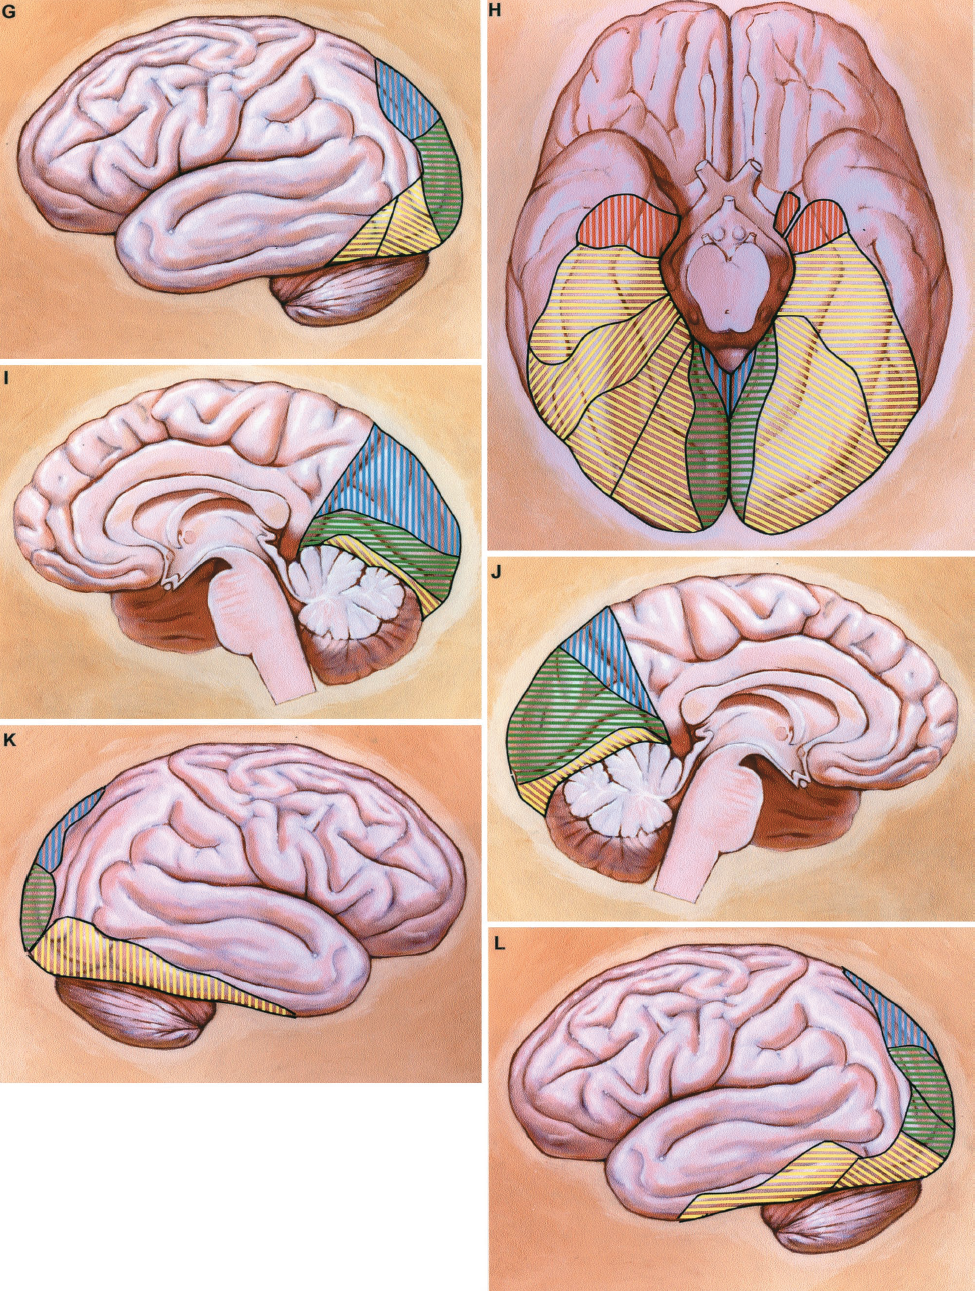 FIGURE 2.37 G-L. The calcarine and parieto-occipital arteries are also present. The fourth most common pattern (10% of hemispheres) is depicted on the left hemisphere (G and J, and right half of basal view, H). This arrangement includes anterior and posterior temporal, calcarine, and parietooccipital arteries, but no hippocampal or middle temporal branches of the PCA. The area of the calcarine artery is split into two sectors to illustrate that there were two calcarine arteries arising from the PCA, as occurs in 10% of hemispheres.